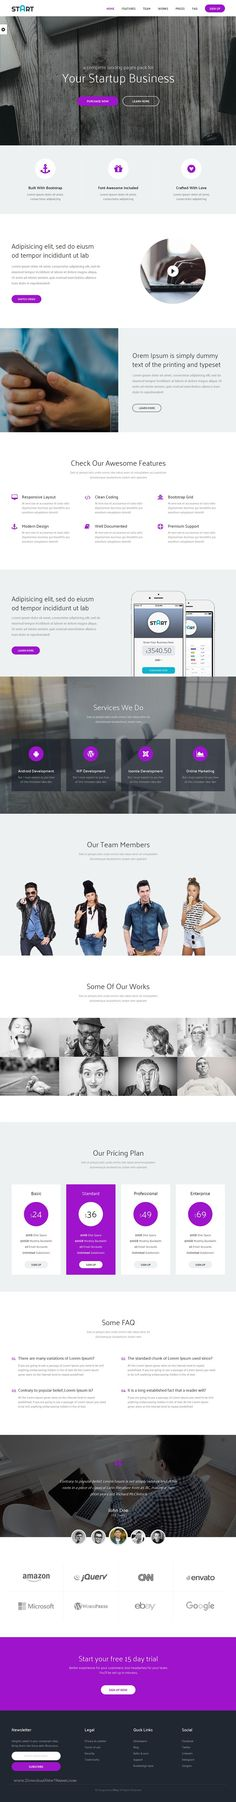 Start complete landing page bootstrap template for corporate or agencies. It comes in one page and multi page layouts.